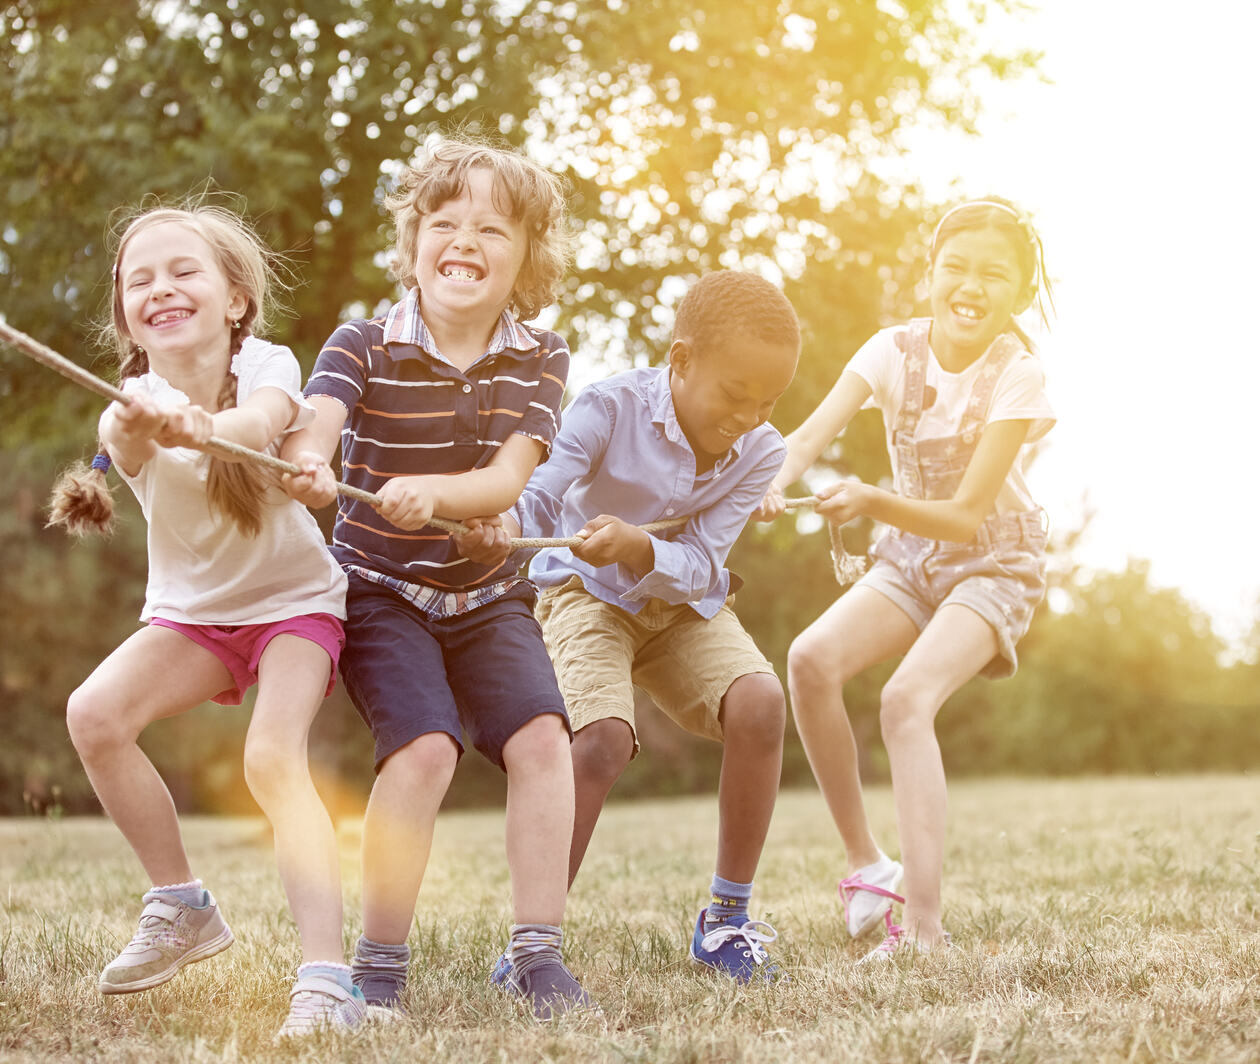 Social Learning and Collaboration in School: Learning to Thrive through Play